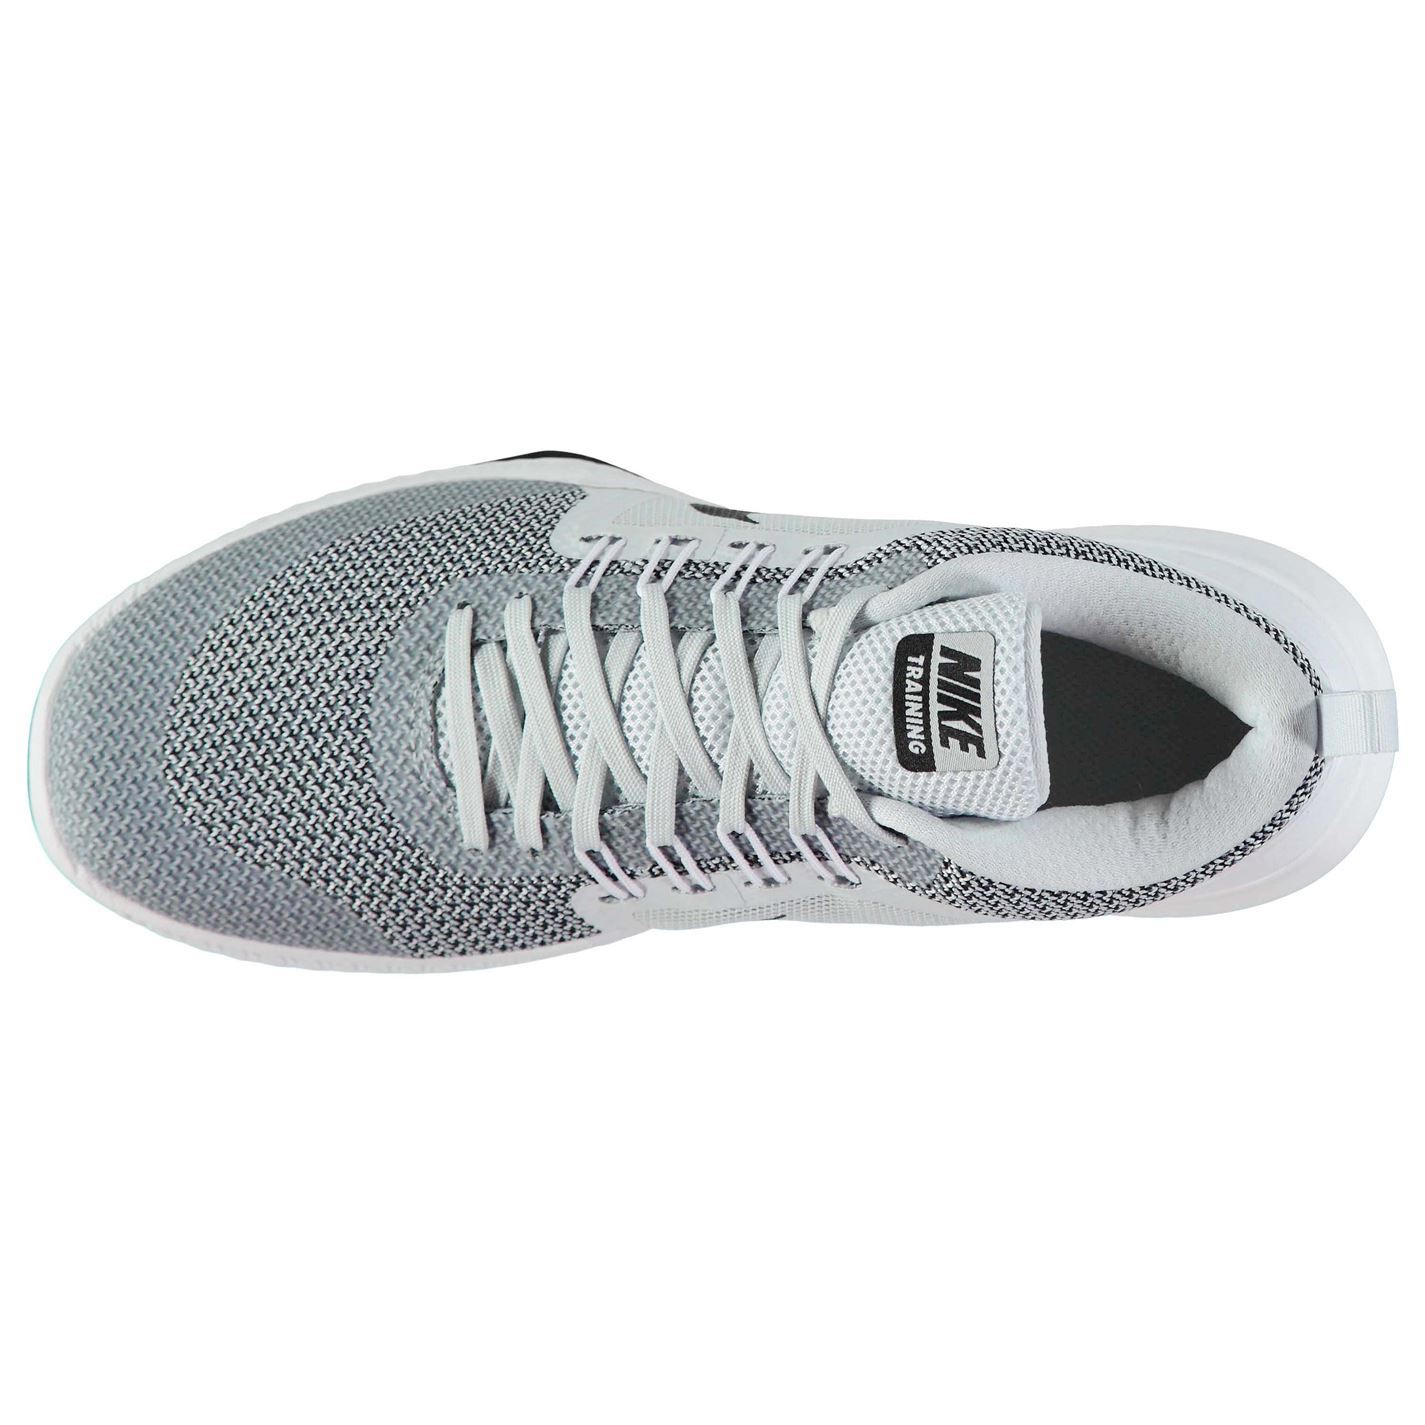 d5d2a83b18313 ... Nike Zoom Domination Fitness Training Shoes Mens Grey Black Trainers  Sneakers